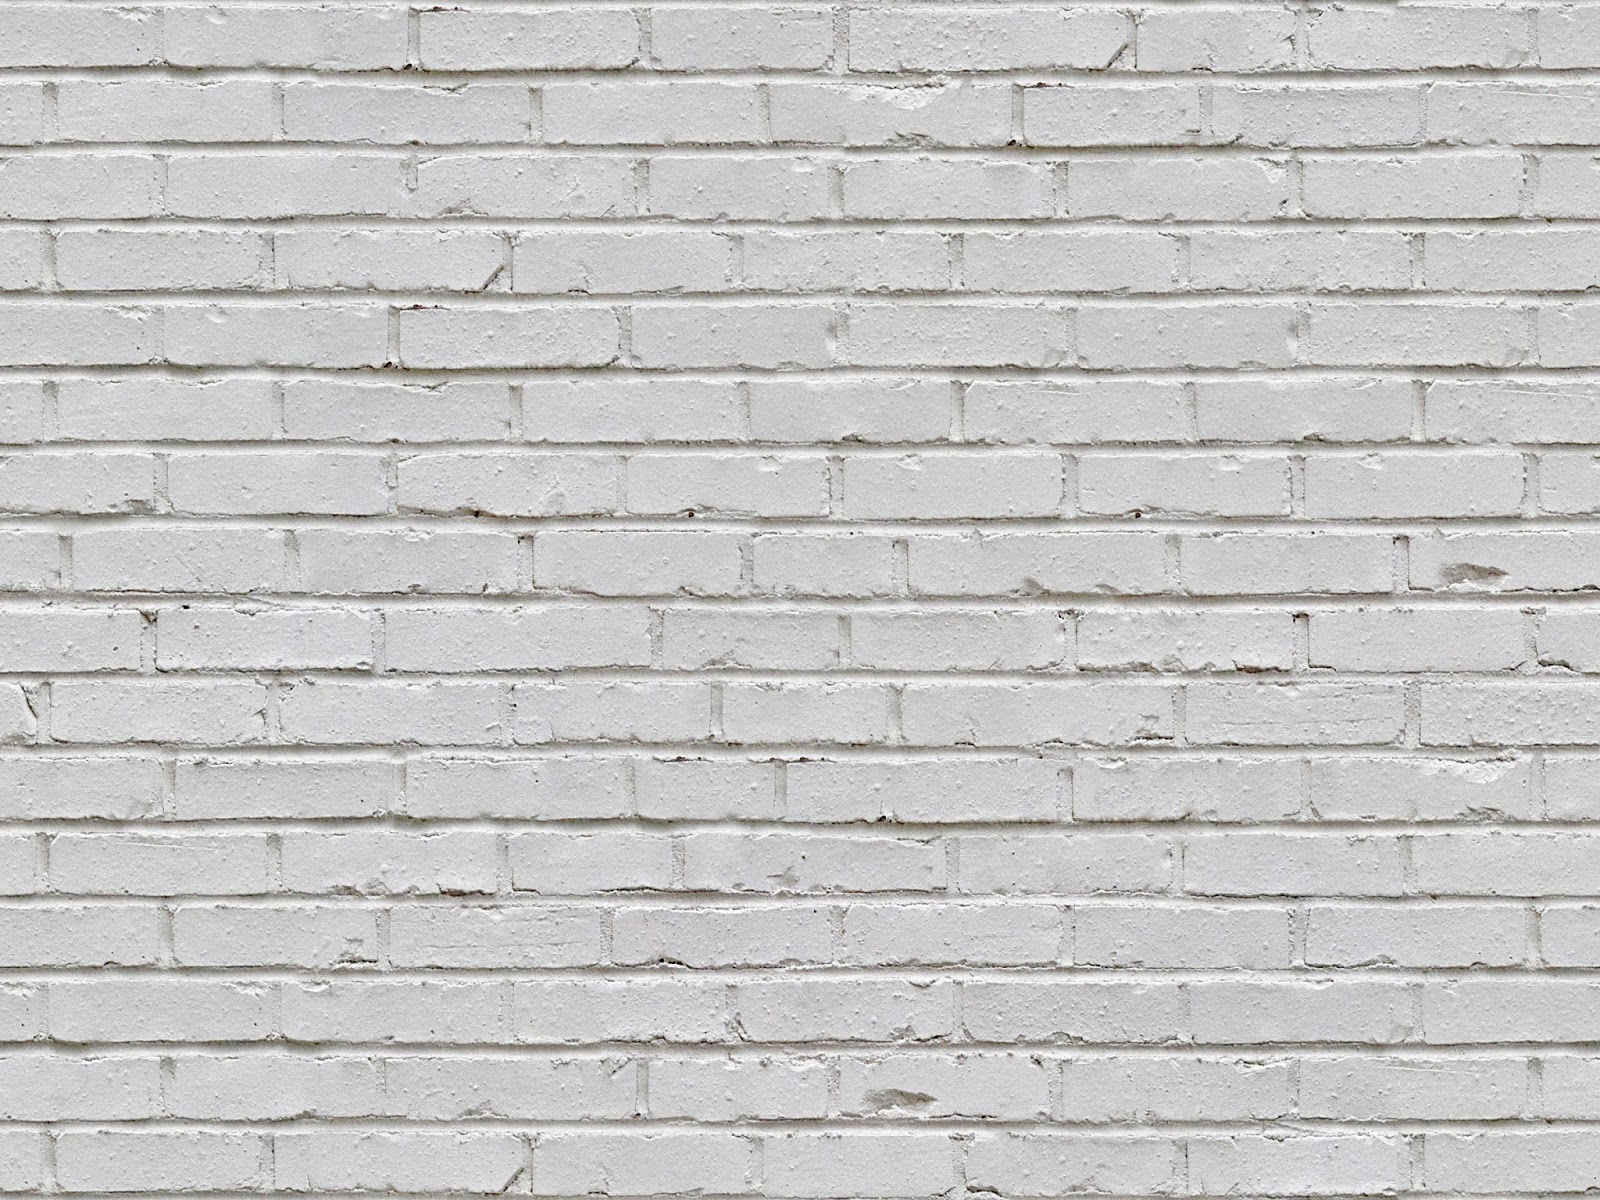 Iphone 4s Lock Screen Wallpaper Size Download White Brick Wall Wallpaper Gallery